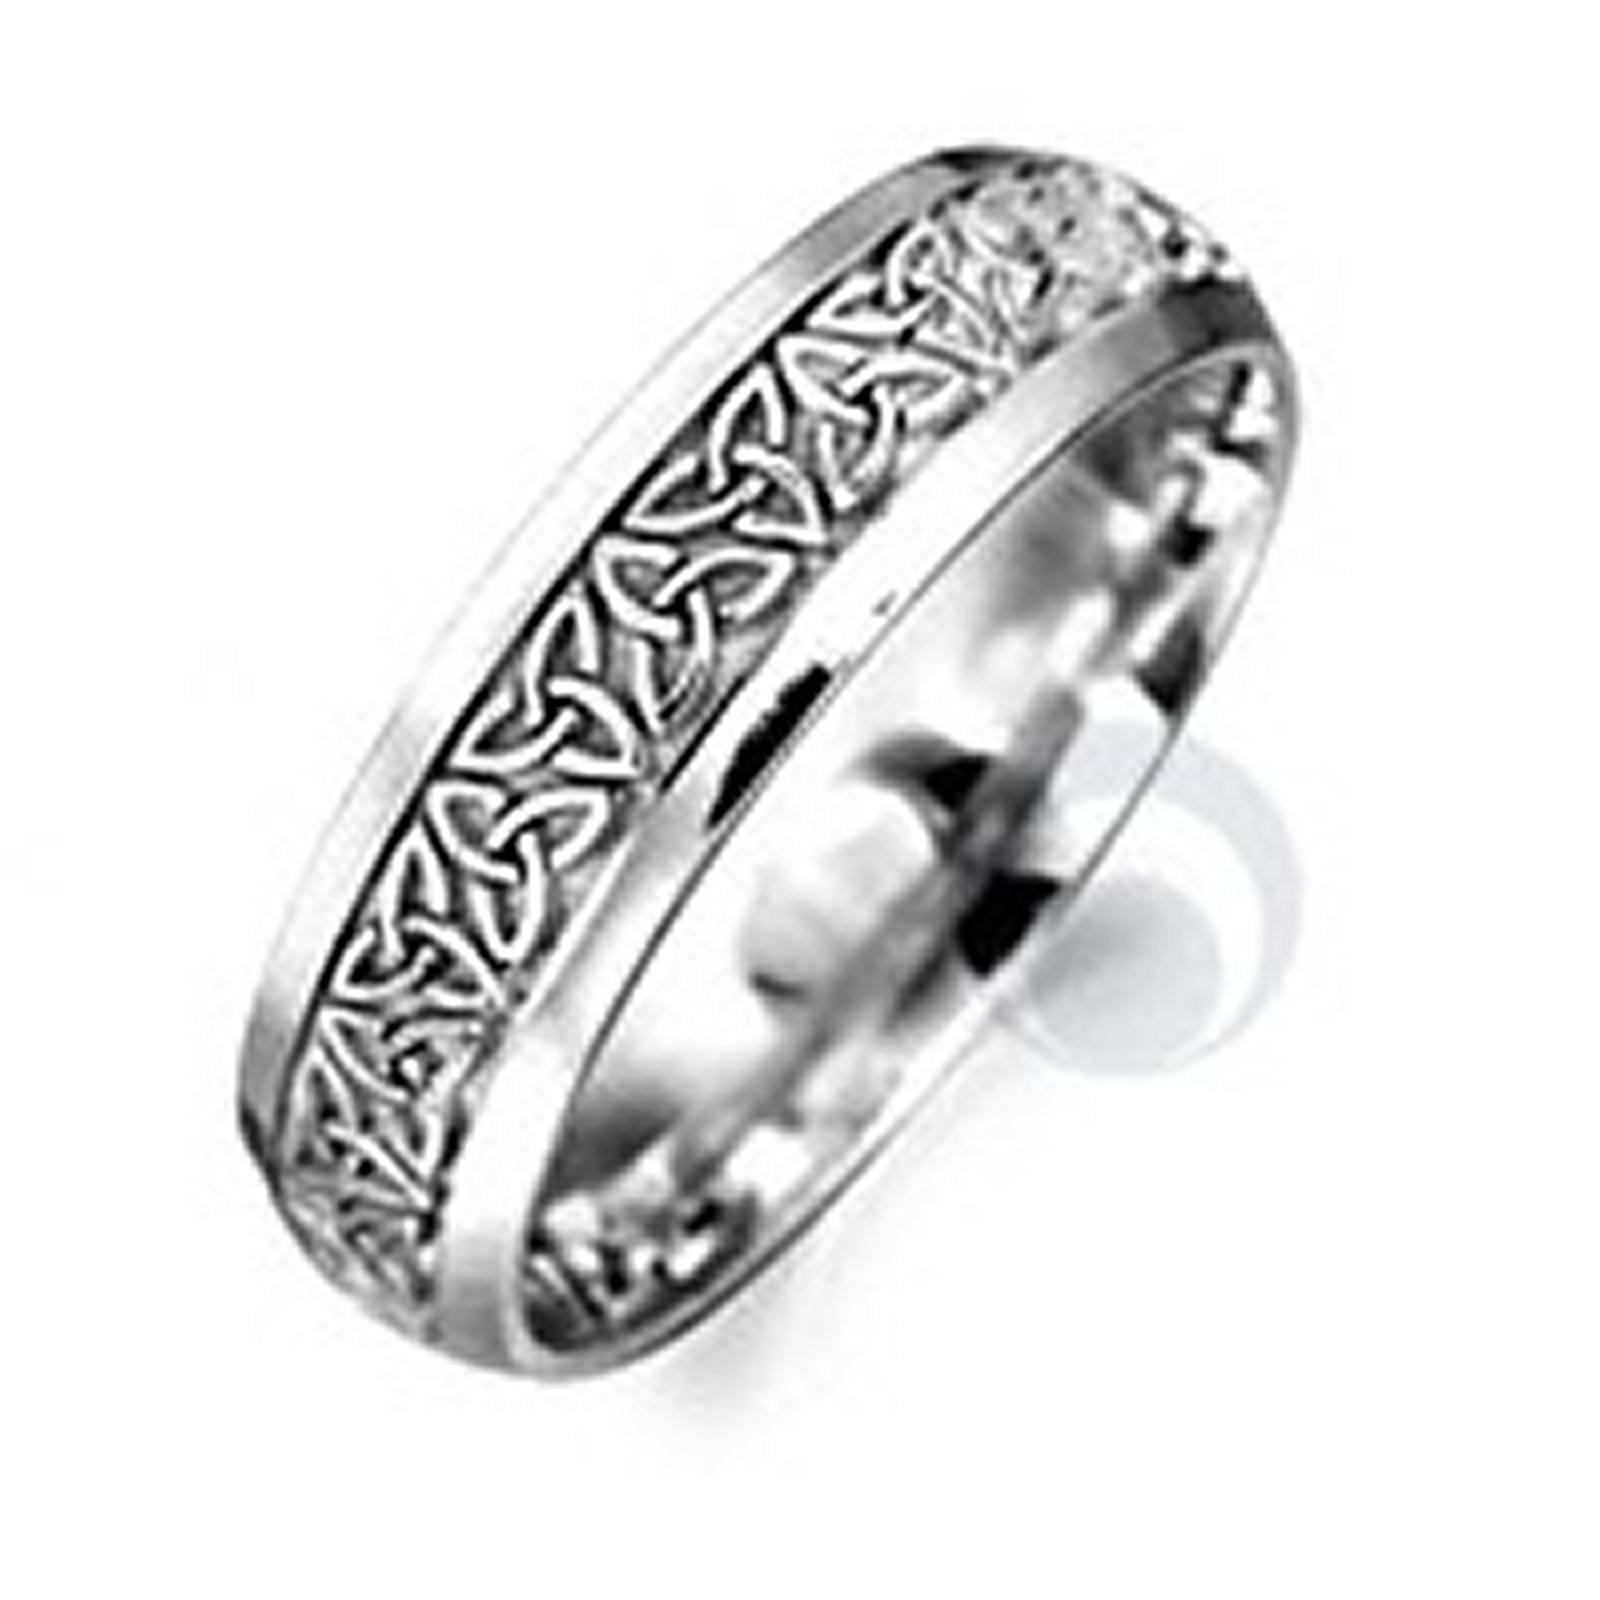 Celtic Patterned Platinum Wedding Ring Wedding Dress From The Regarding Scottish Celtic Engagement Rings (View 3 of 15)